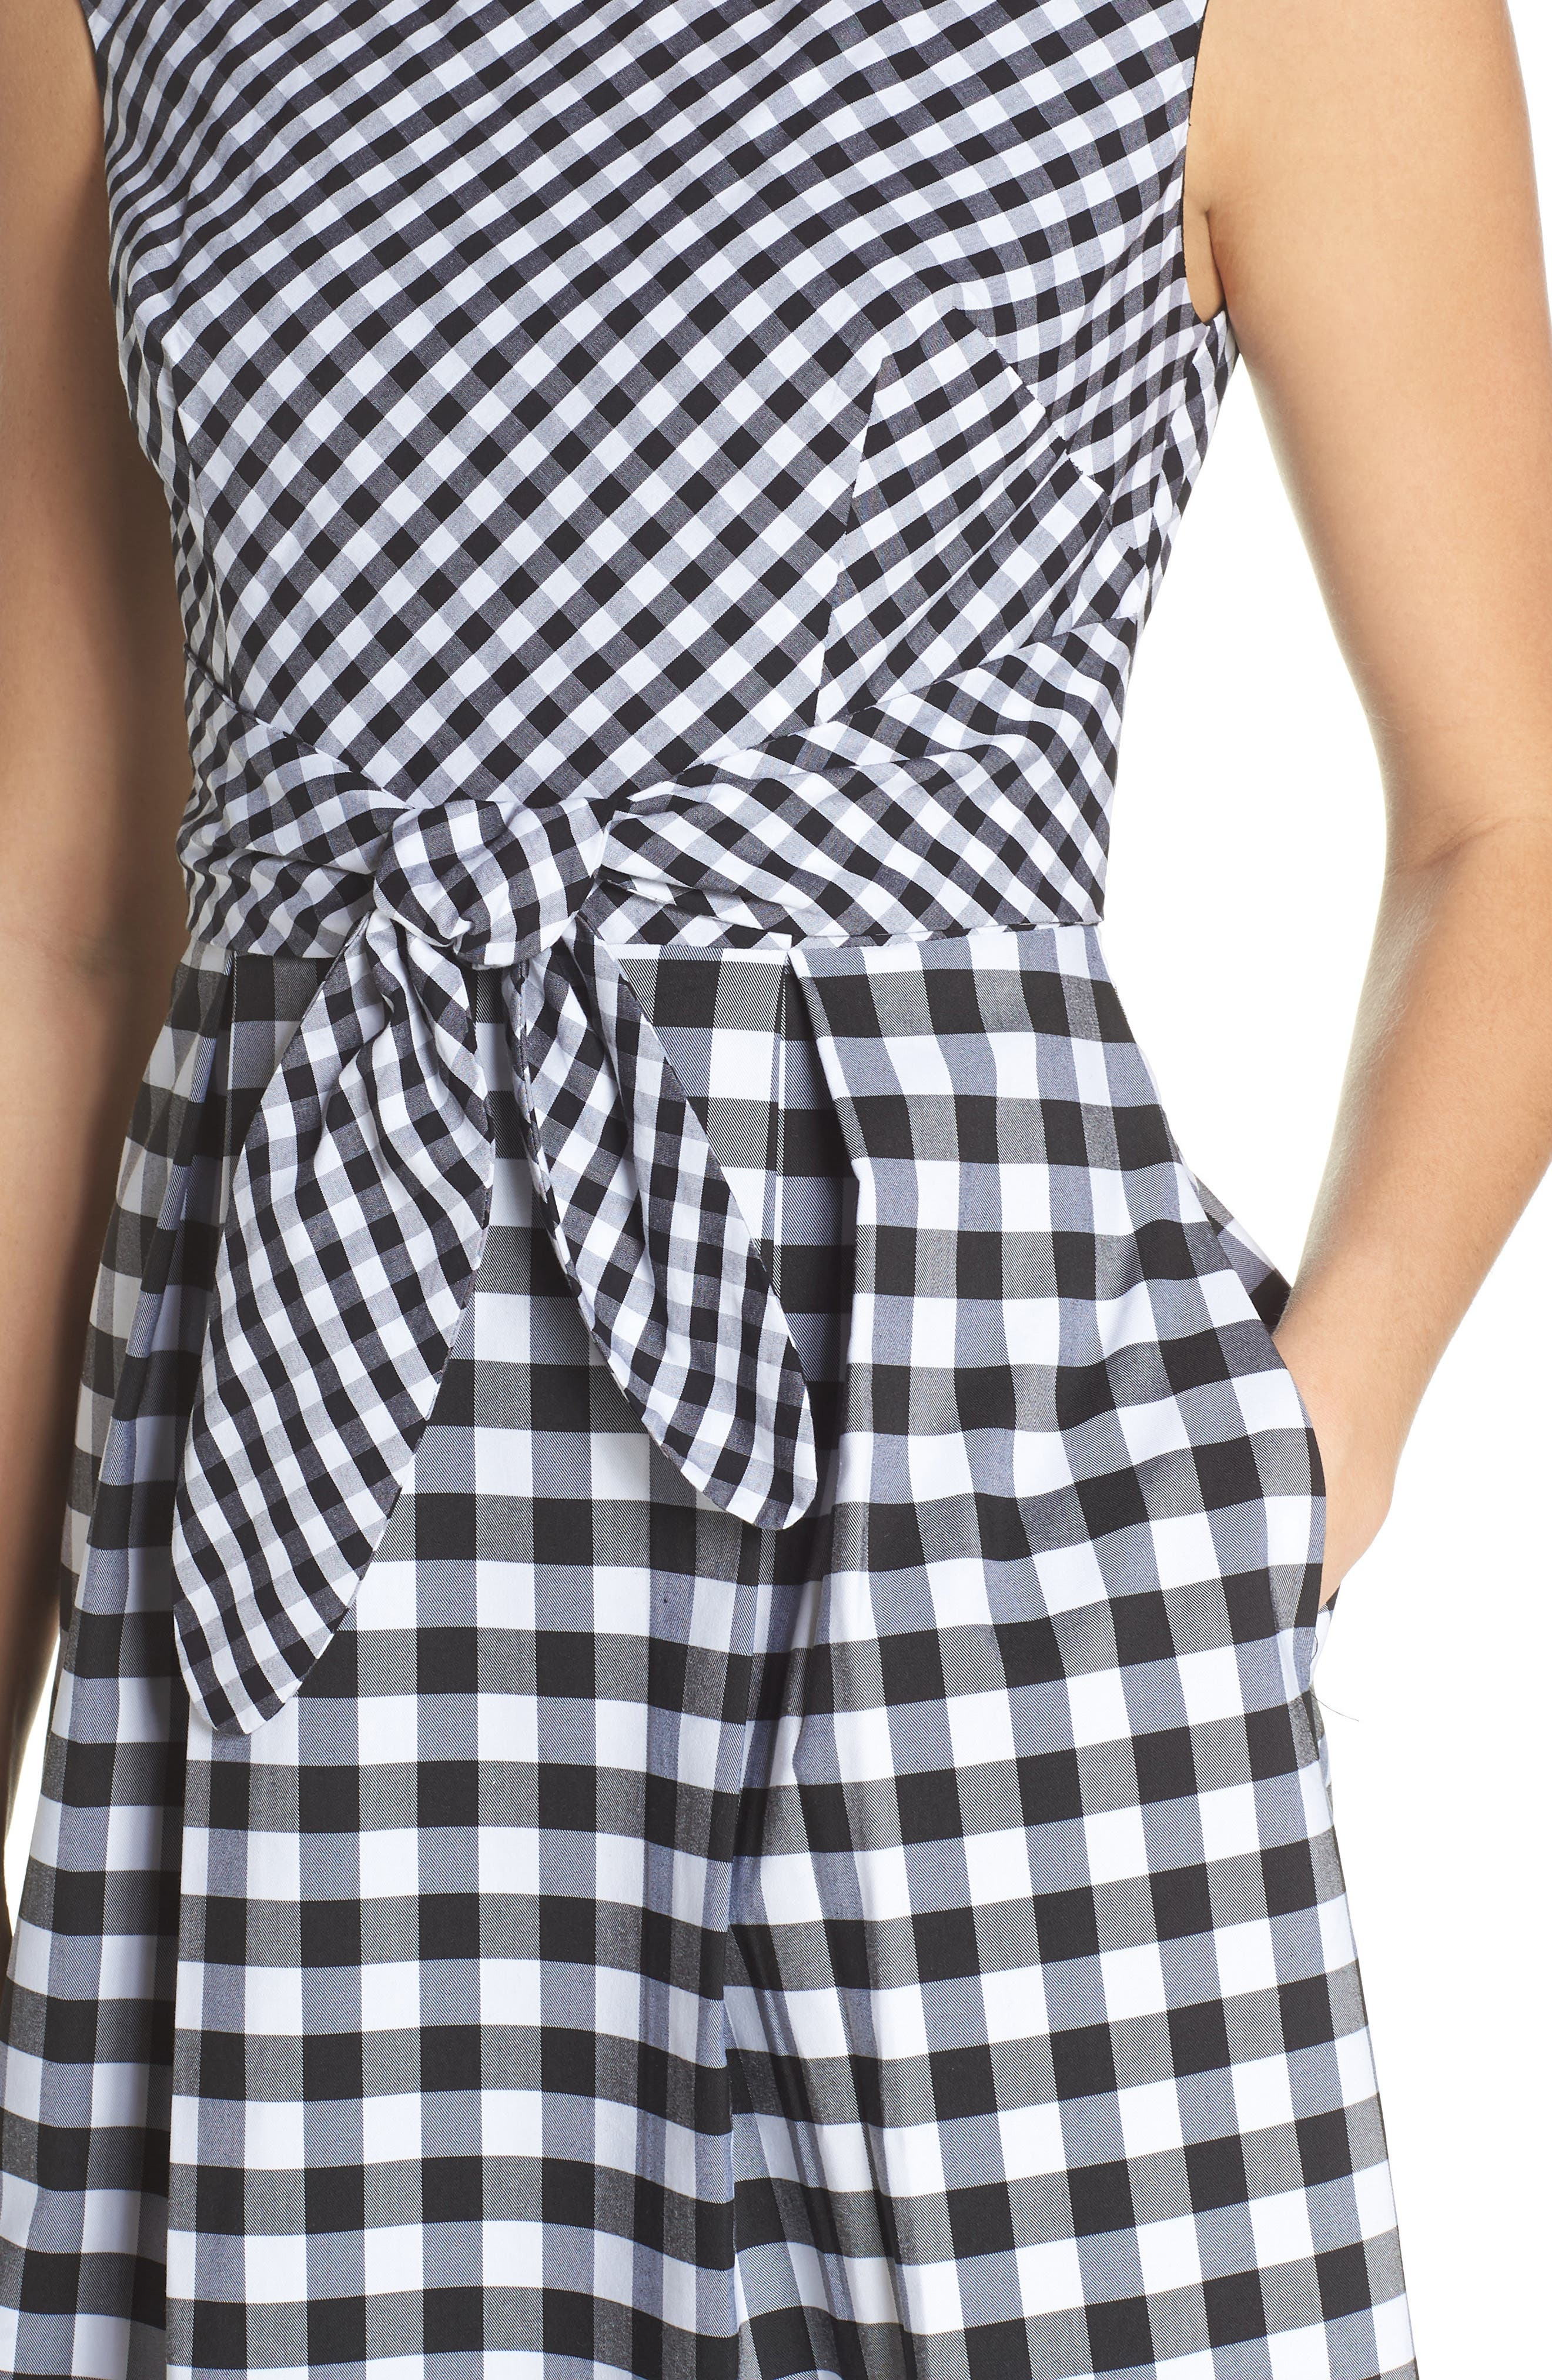 ADRIANNA PAPELL,                             Gingham Tie Front Midi Dress,                             Alternate thumbnail 4, color,                             002